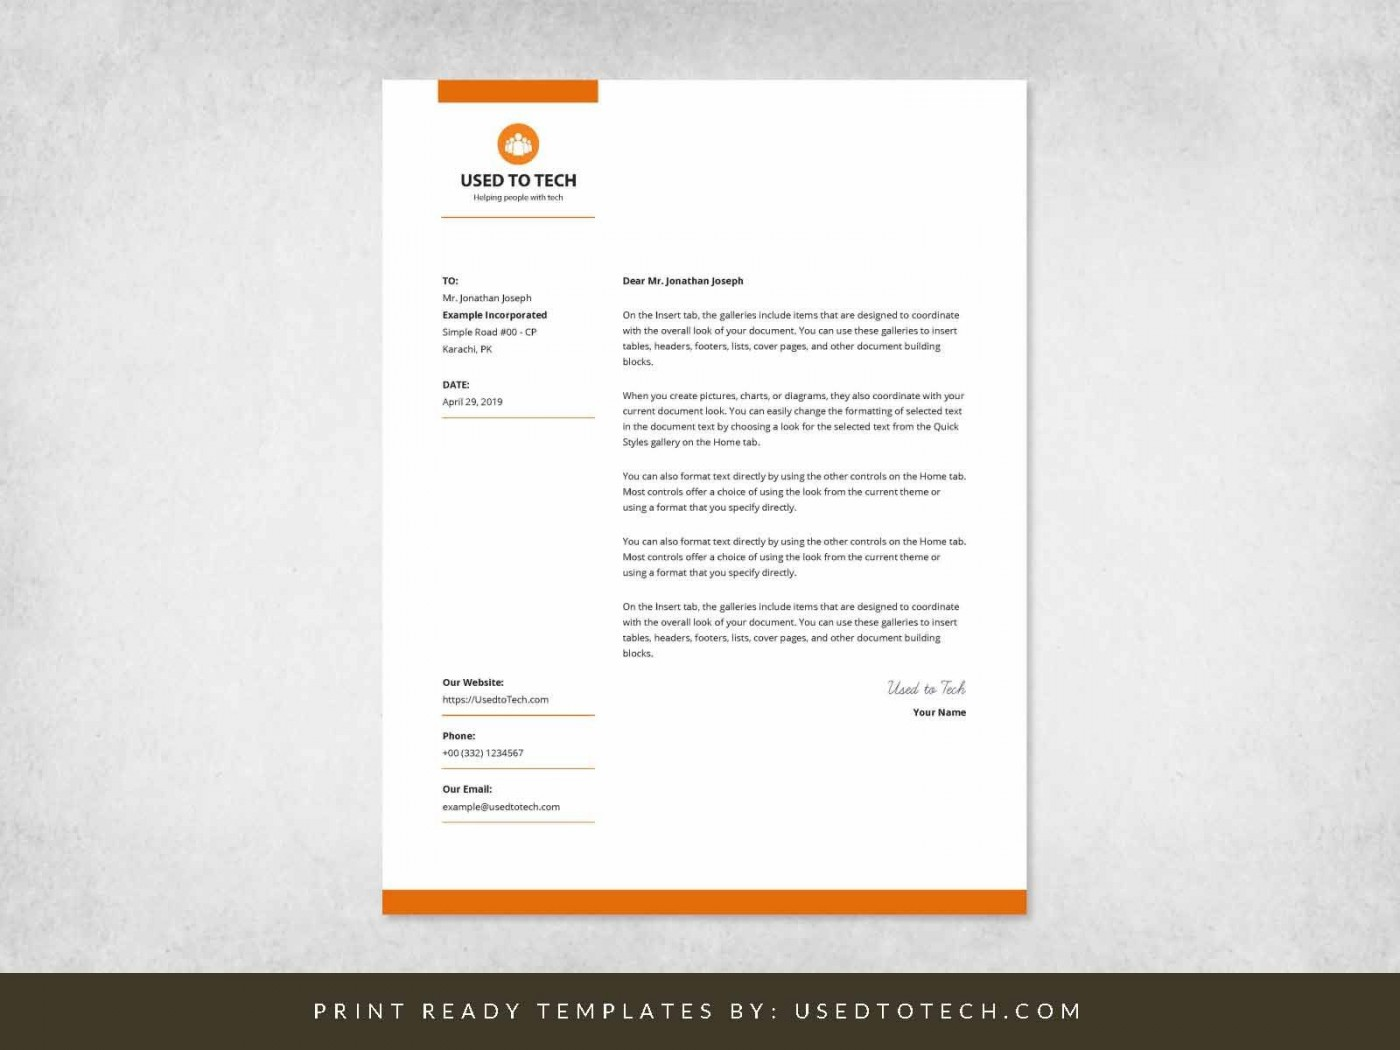 000 Best Simple Letterhead Format In Word Free Download Highest Clarity 1400